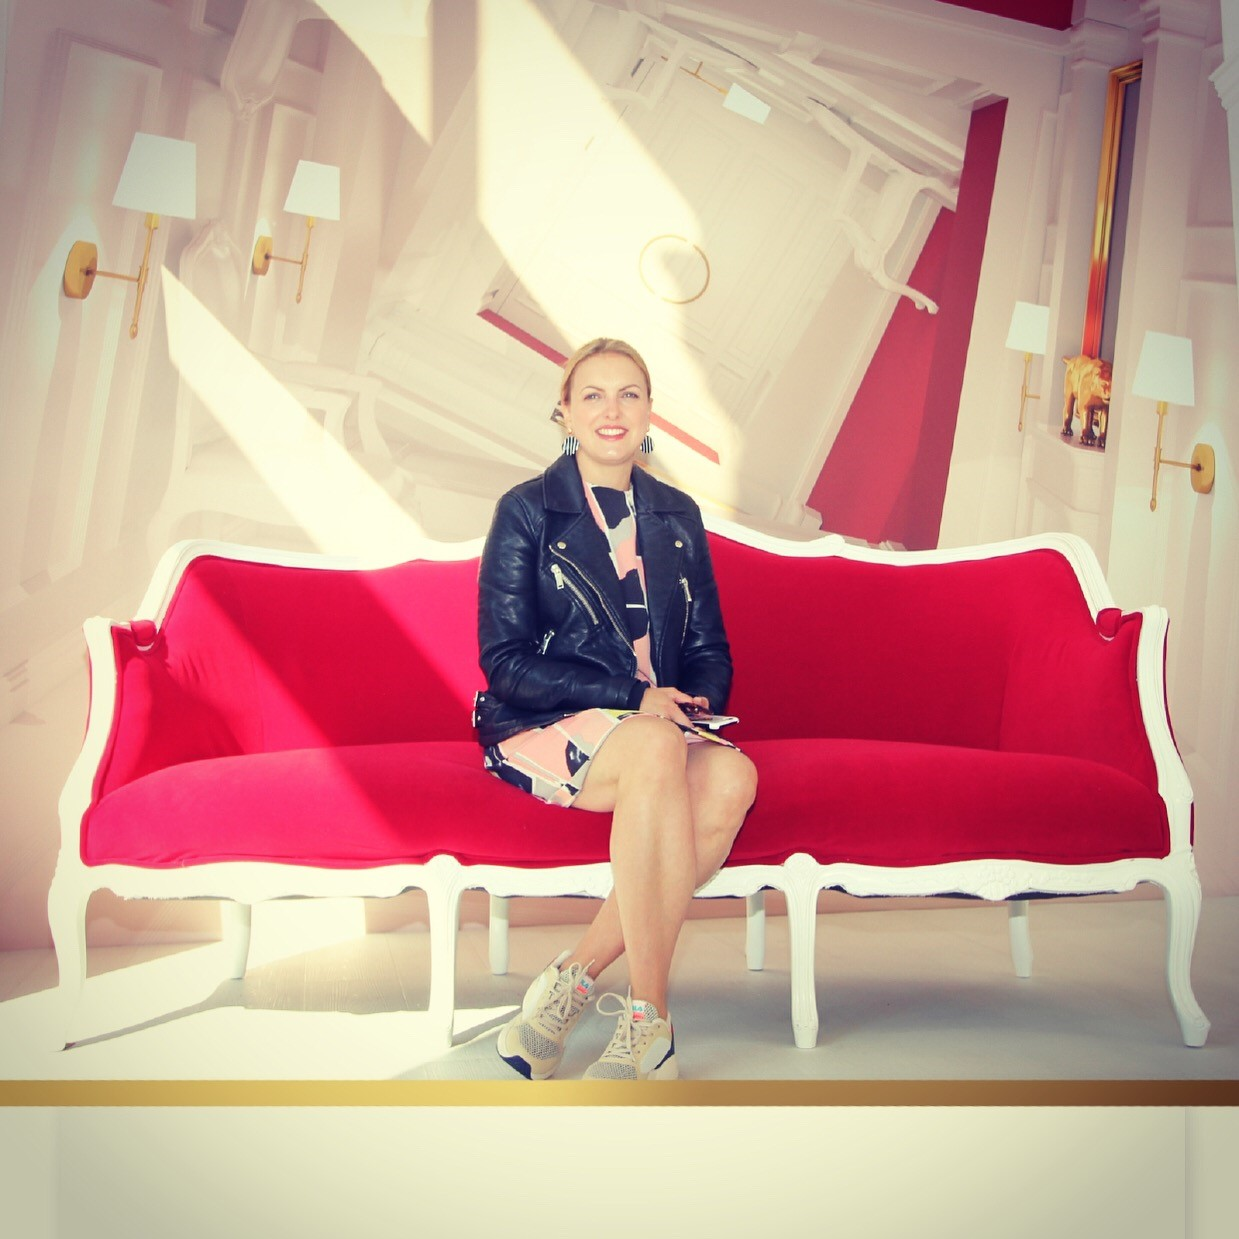 A Photo of Sarah Manning siting on a red seat smiling directly at the camera.